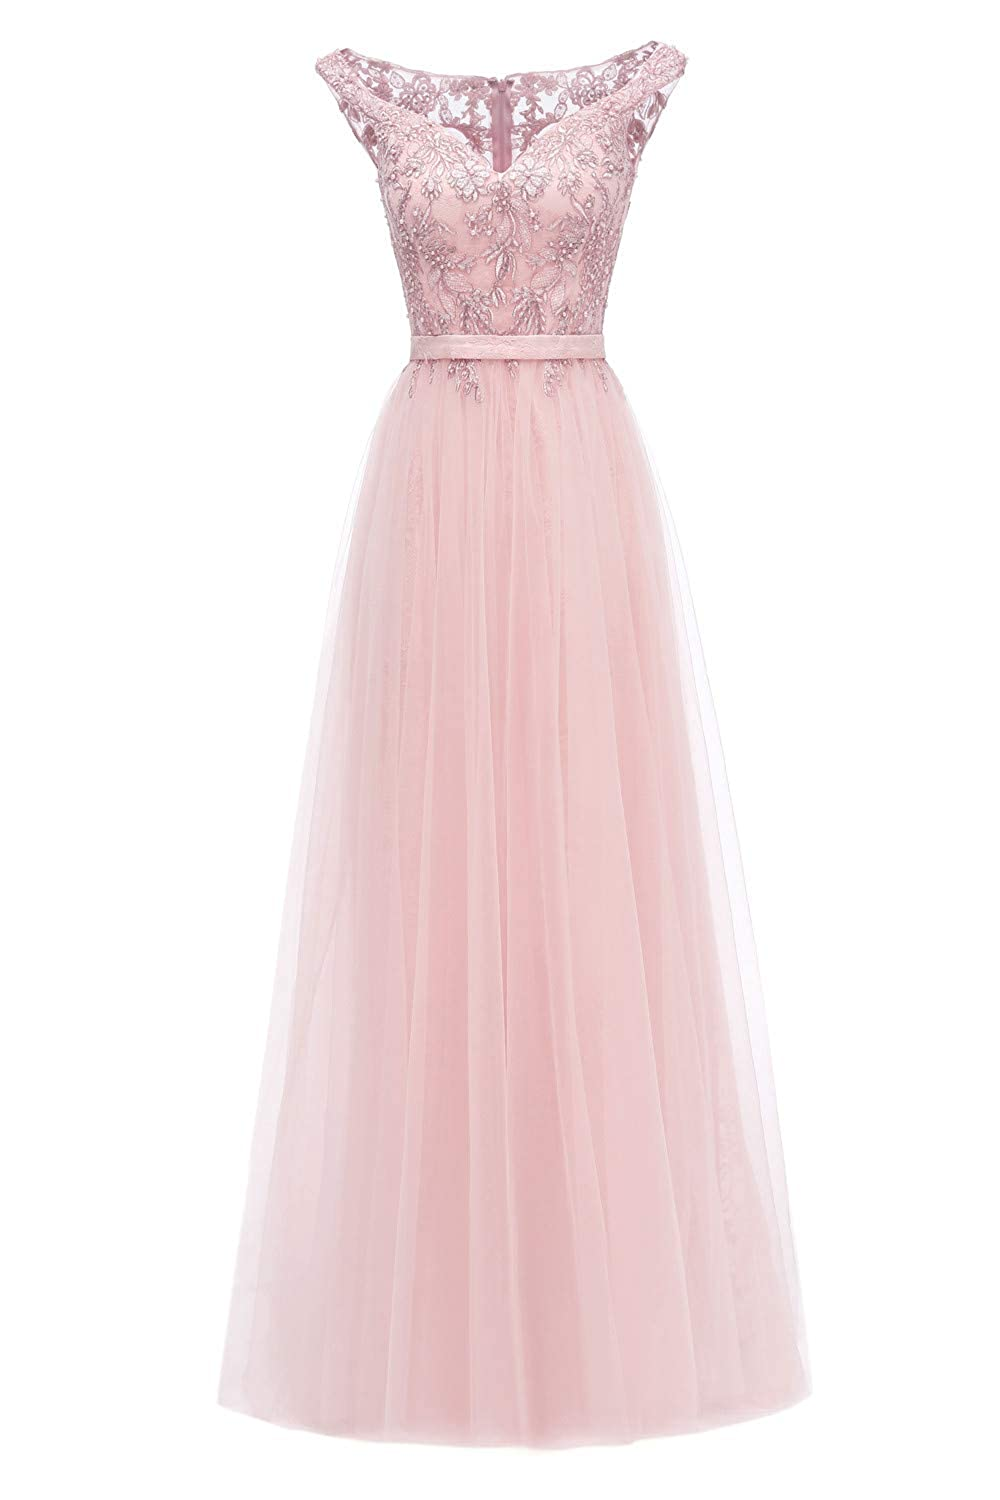 Baby Pink Huifany Womens VNeck Cap Sleeve Lace Prom Bridesmaid Dresses Long Formal Evening Ball Gowns